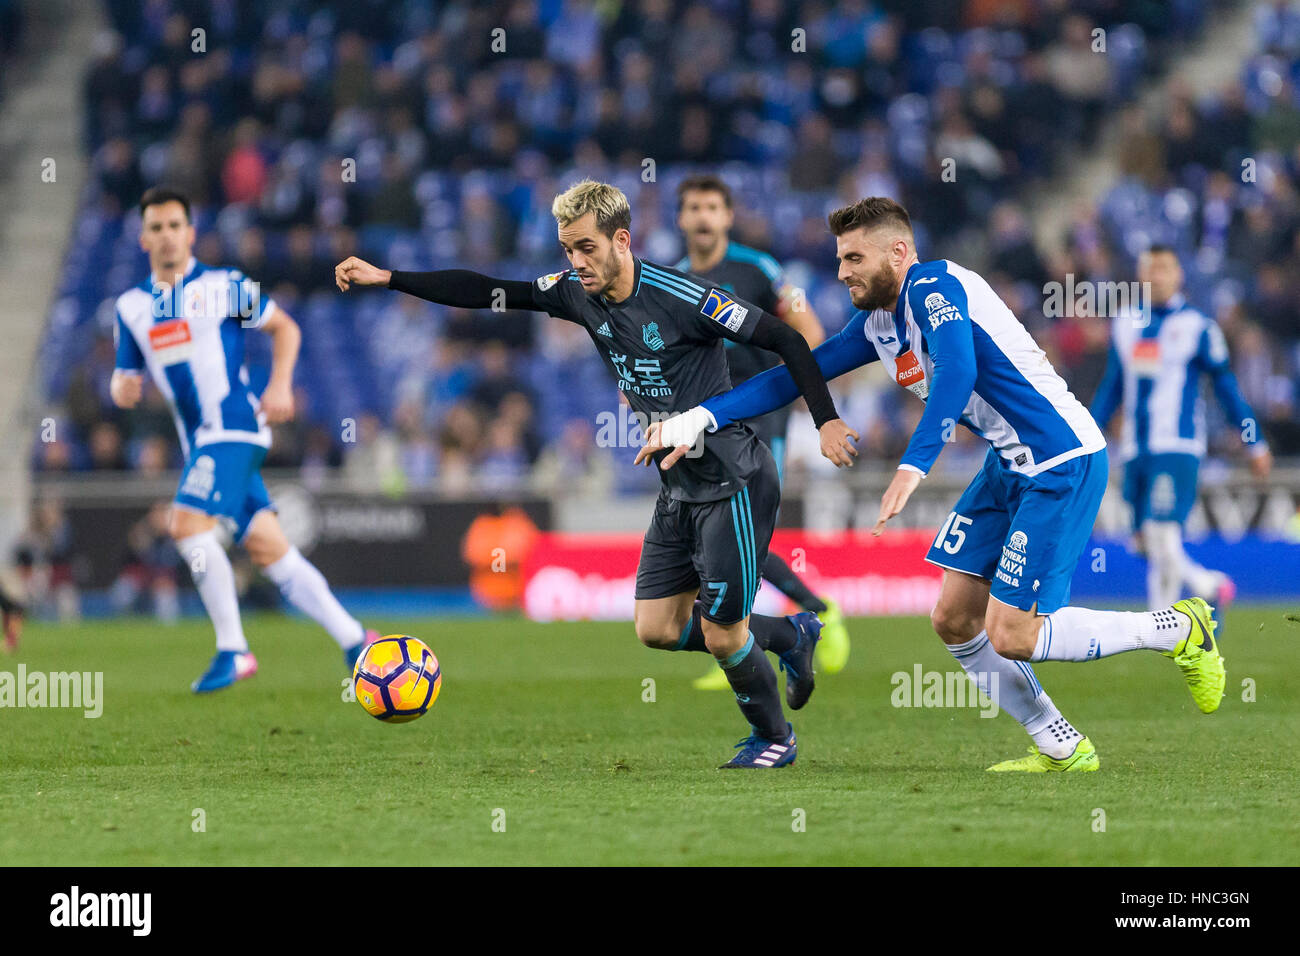 February 10, 2017: Juanmi during the match between RCD Espanyol vs Real Sociedad, for the round 22 of the Liga Santander, - Stock Image